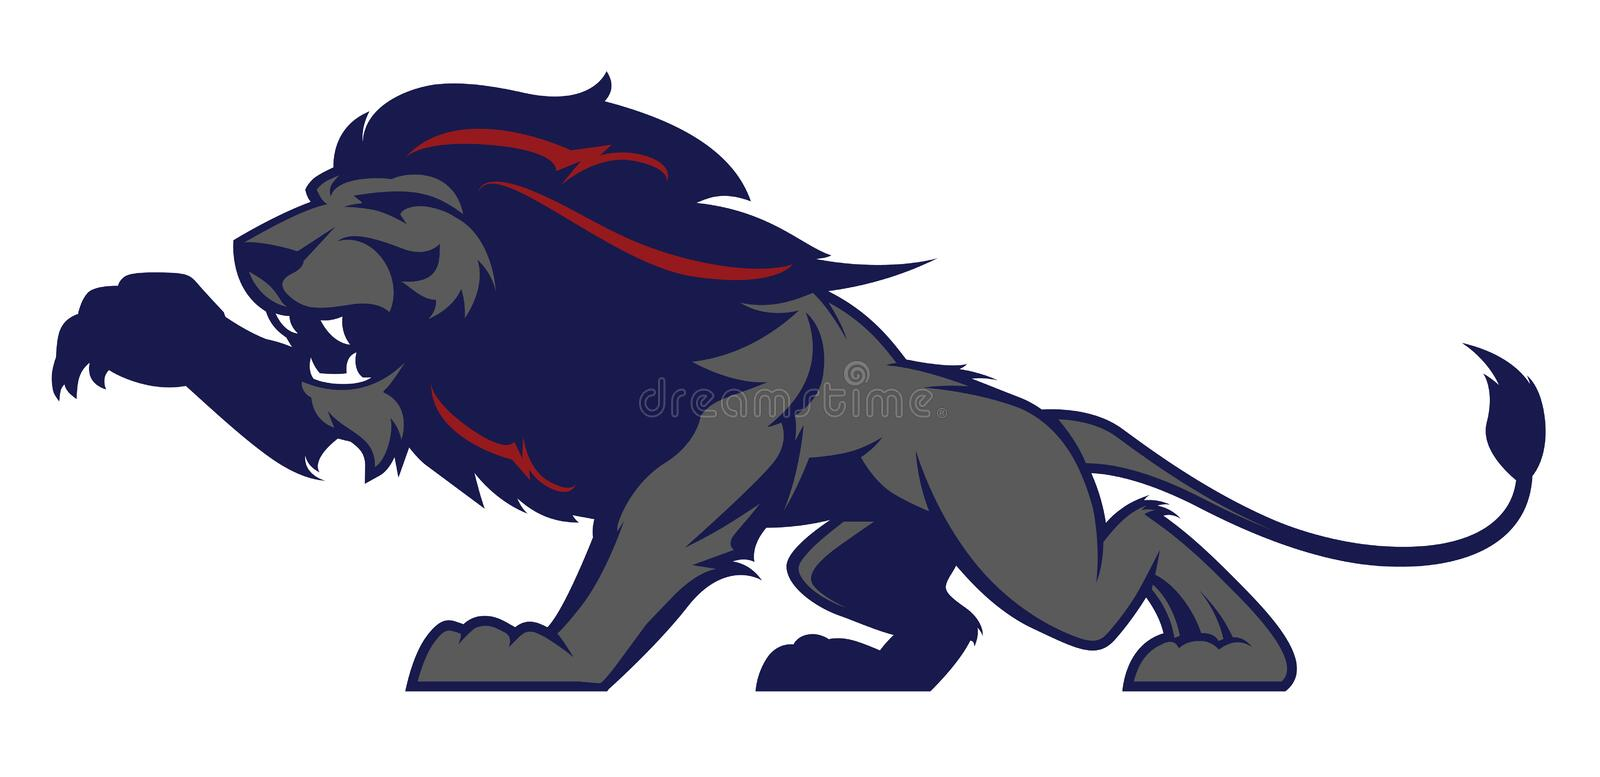 Lion mascot, colored version. Great for sports logos & college team mascots. royalty free illustration